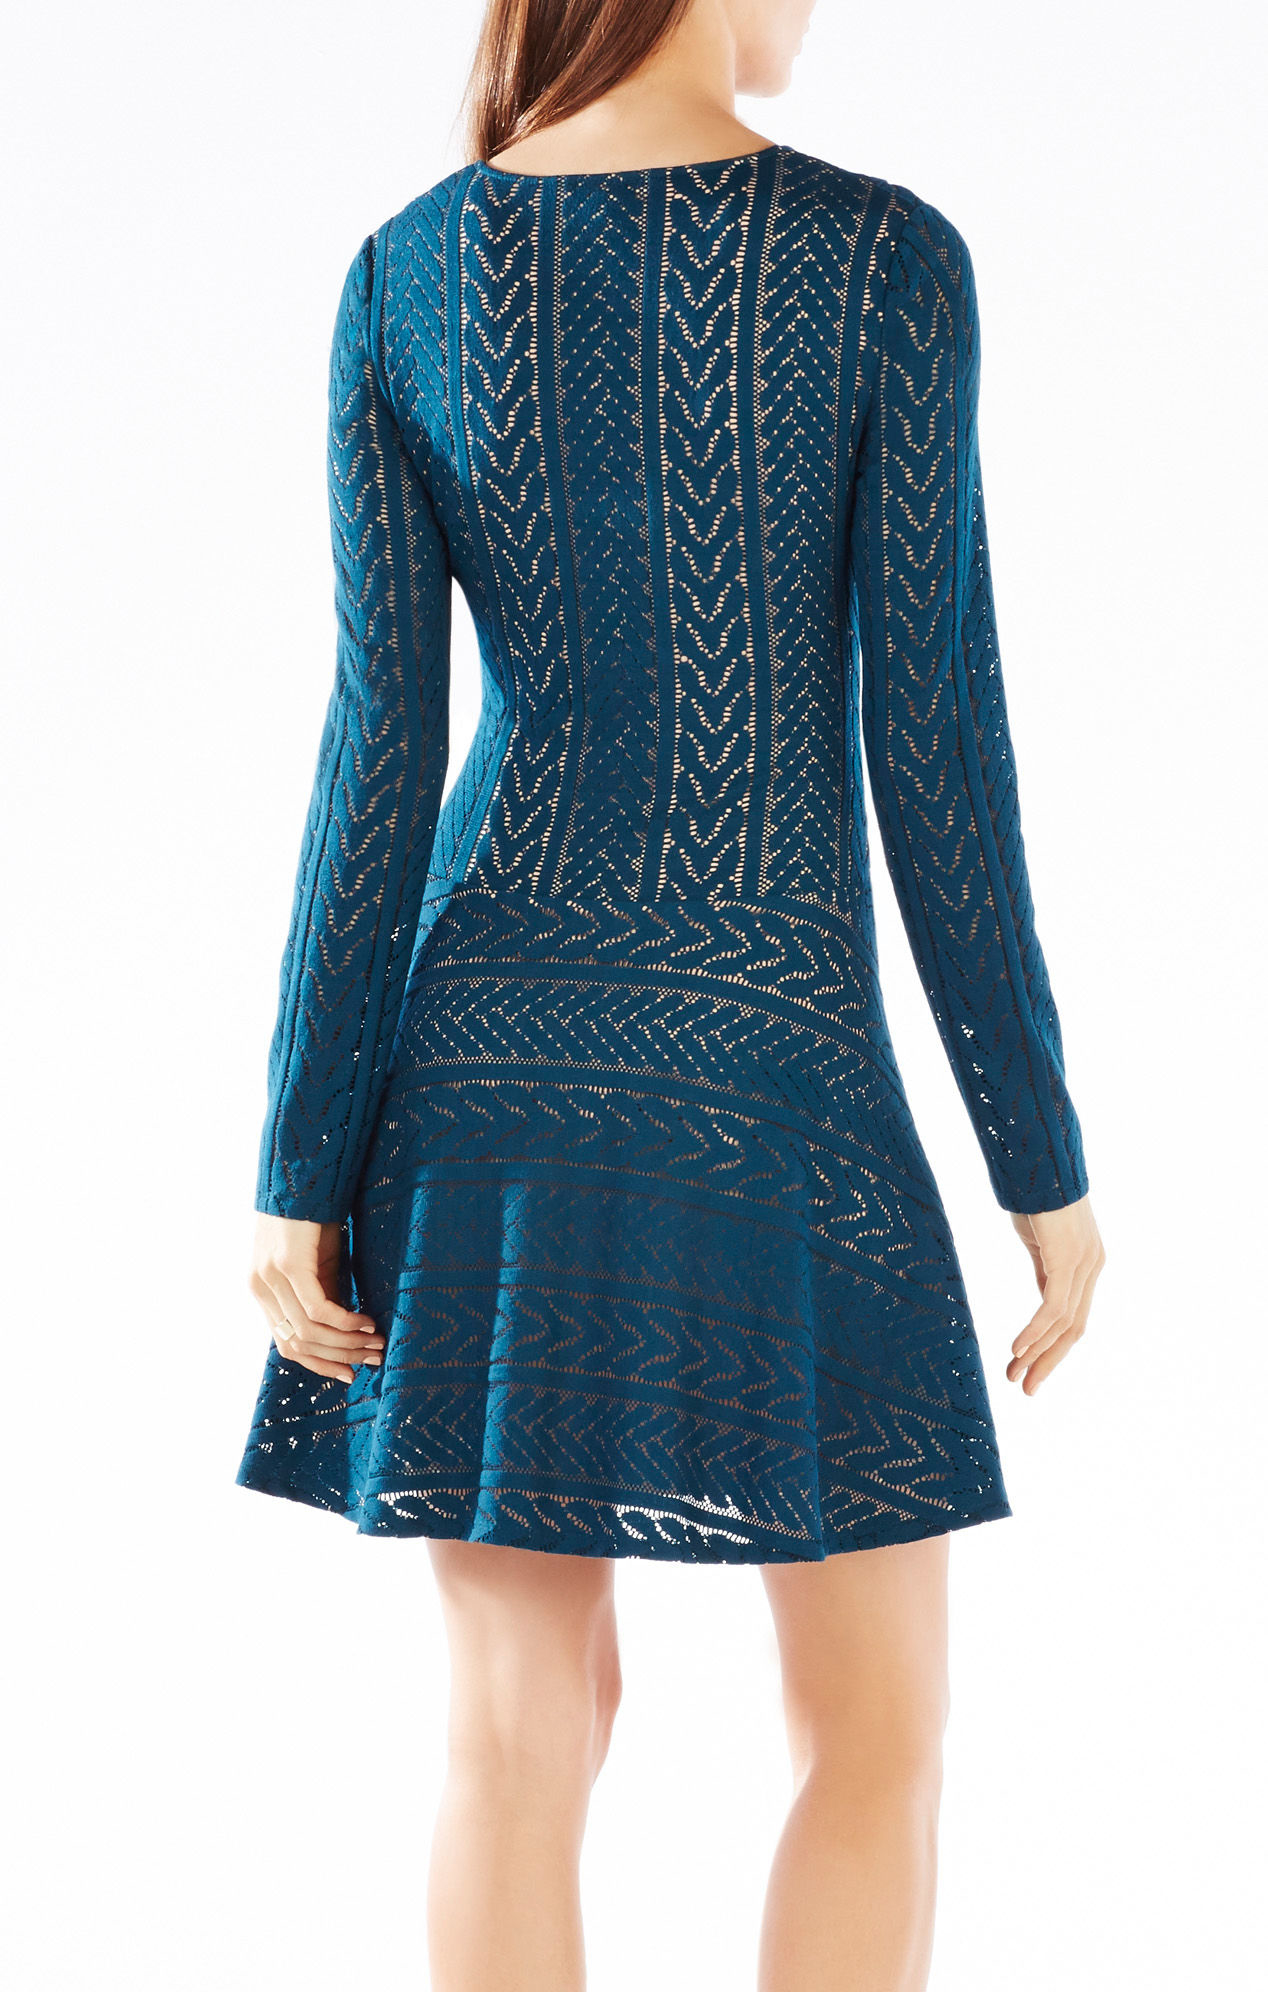 Teal dark lace dress catalog photo